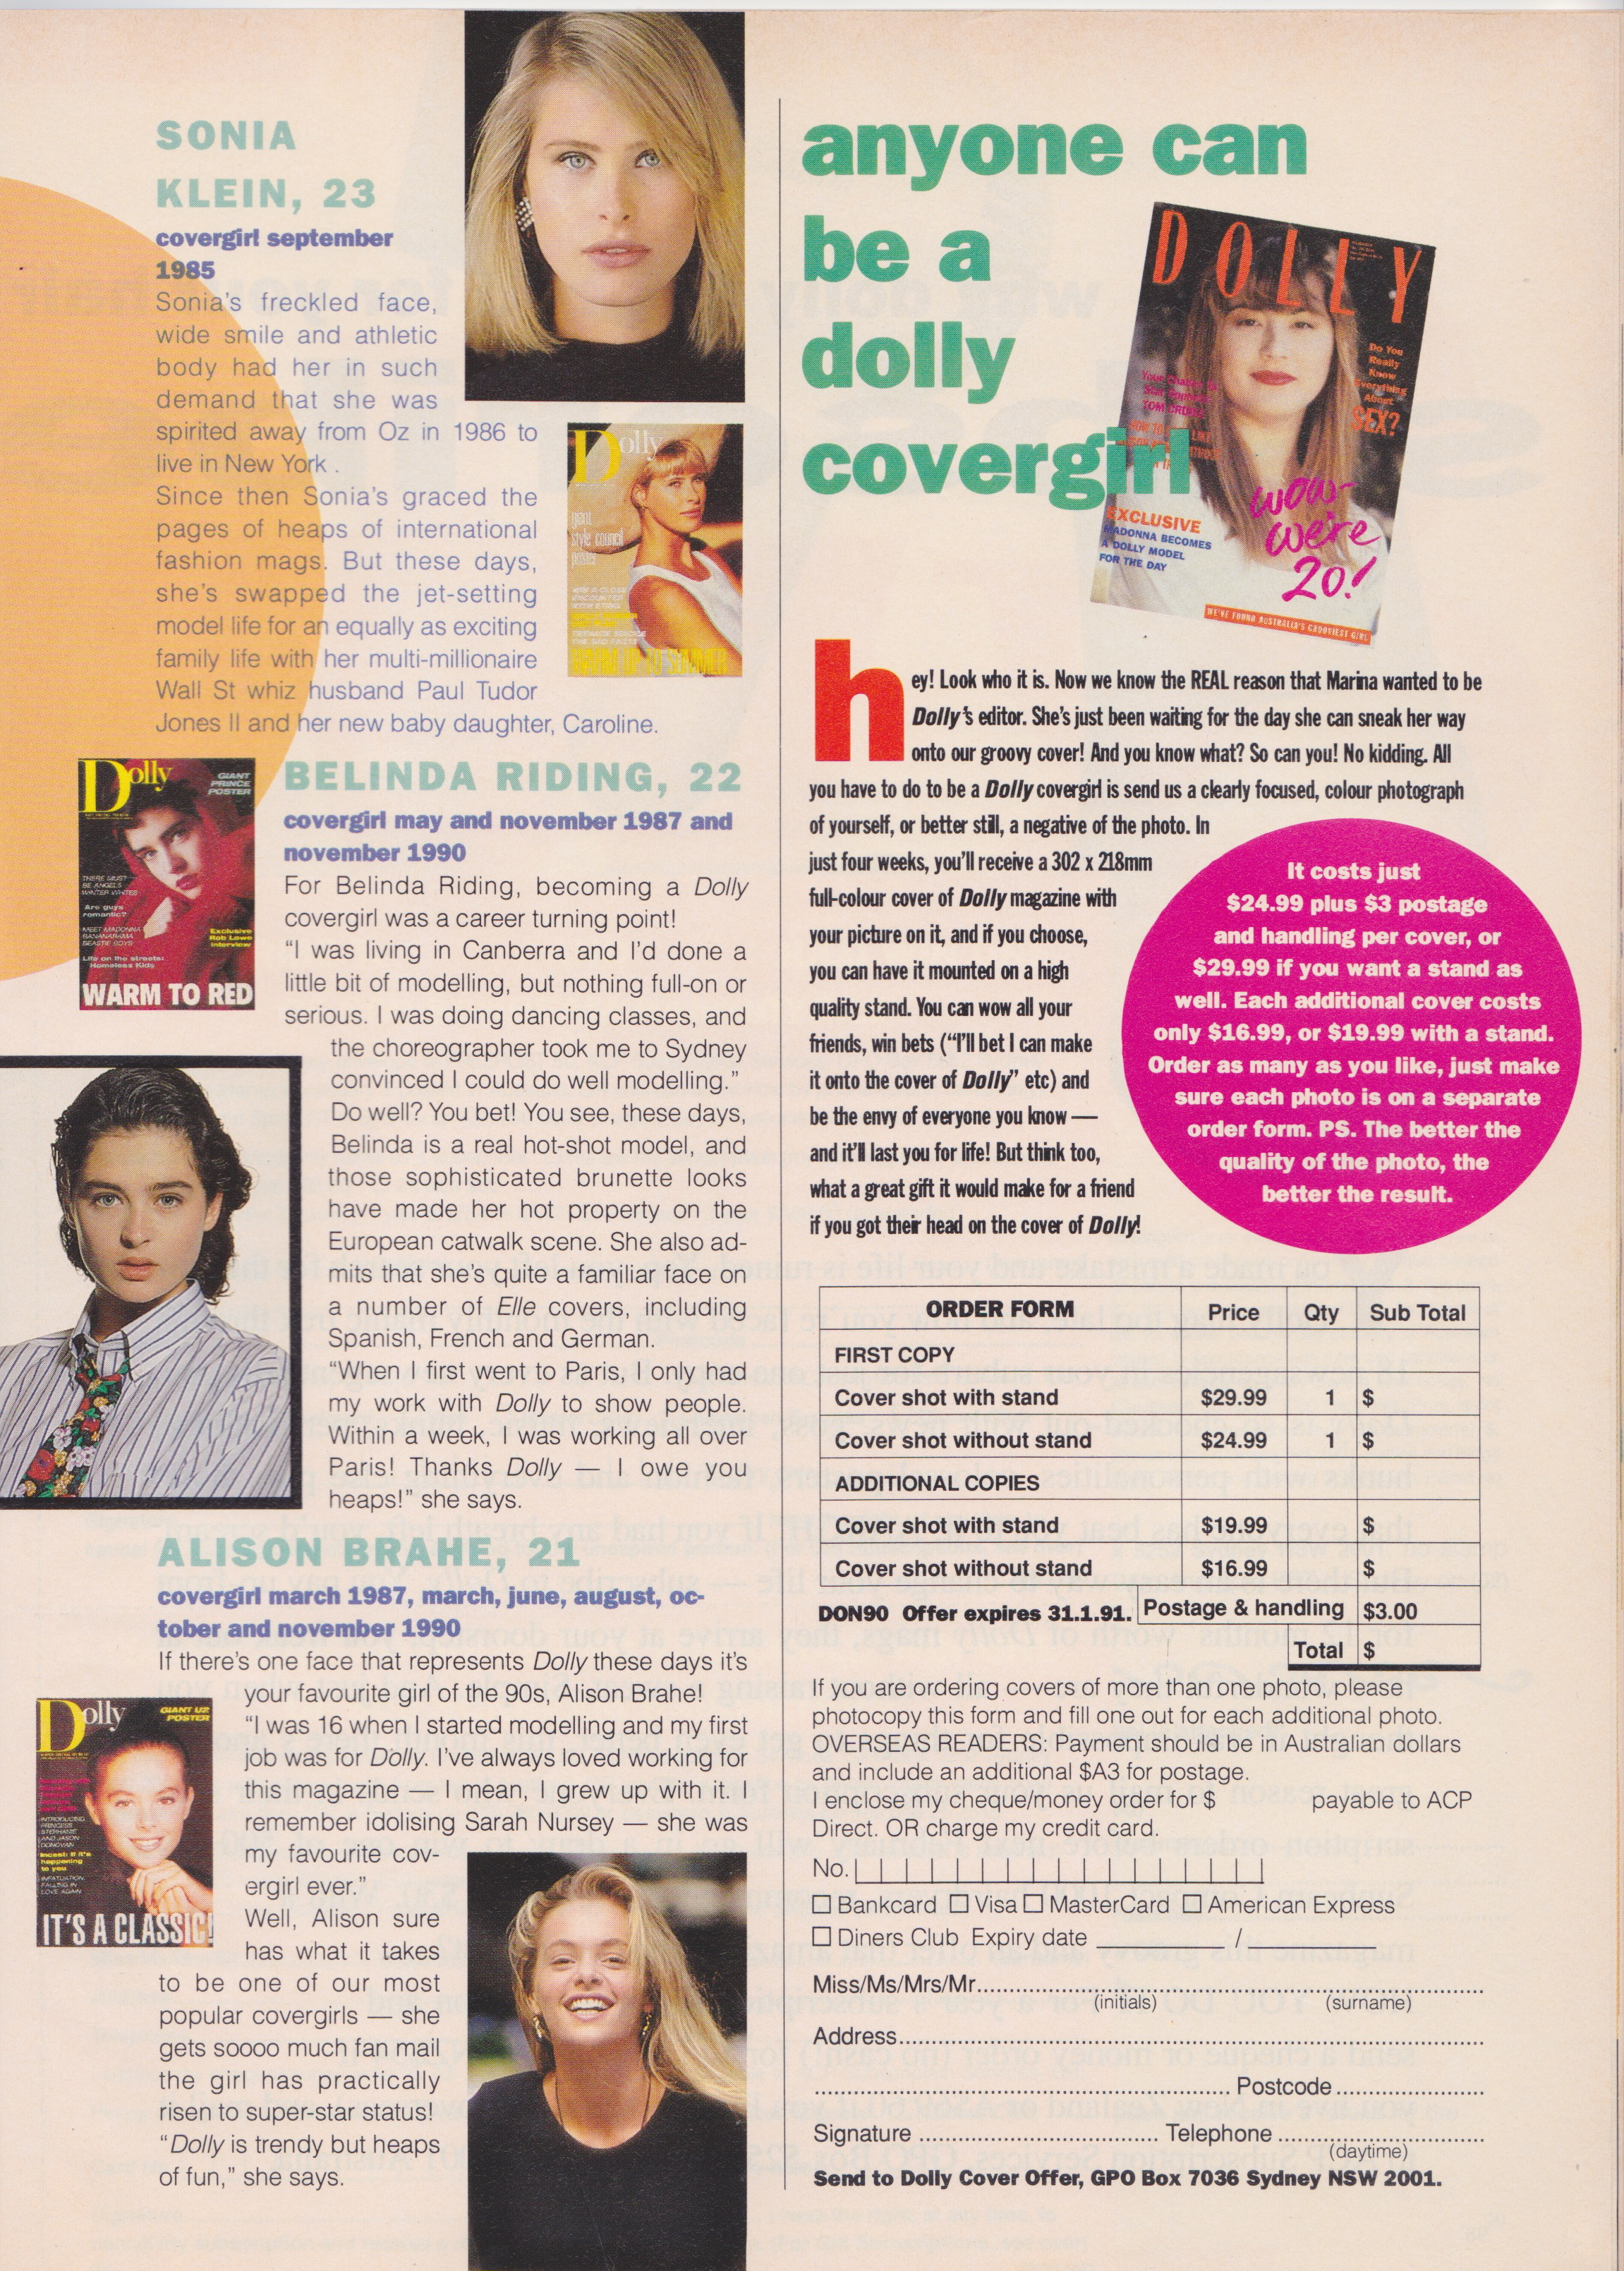 Dolly Magazine Covergirls | Where Are They Now? 04.jpeg